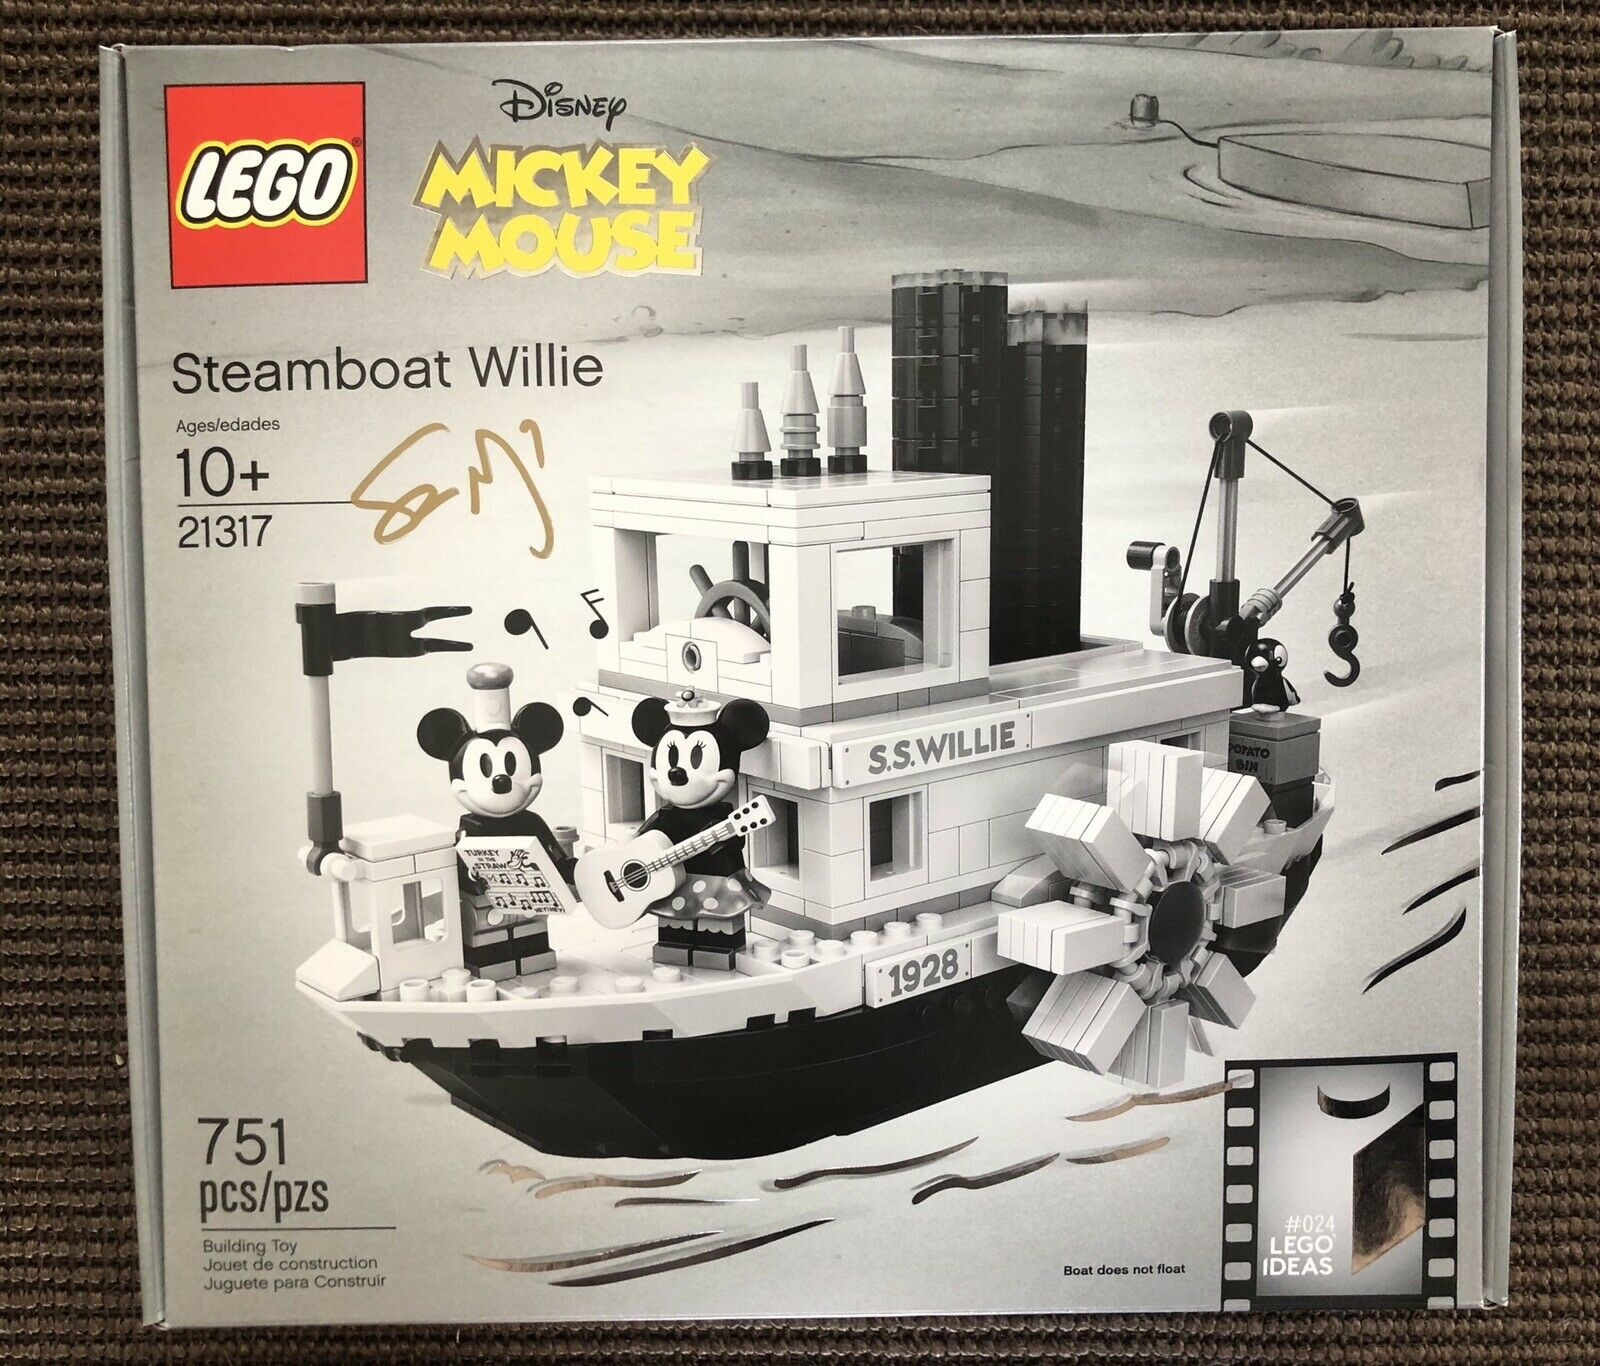 Lego Ideas Steamboat Willie 21317 AUTOGRAPHED SIGNED   ERROR BOX  Ready To Ship